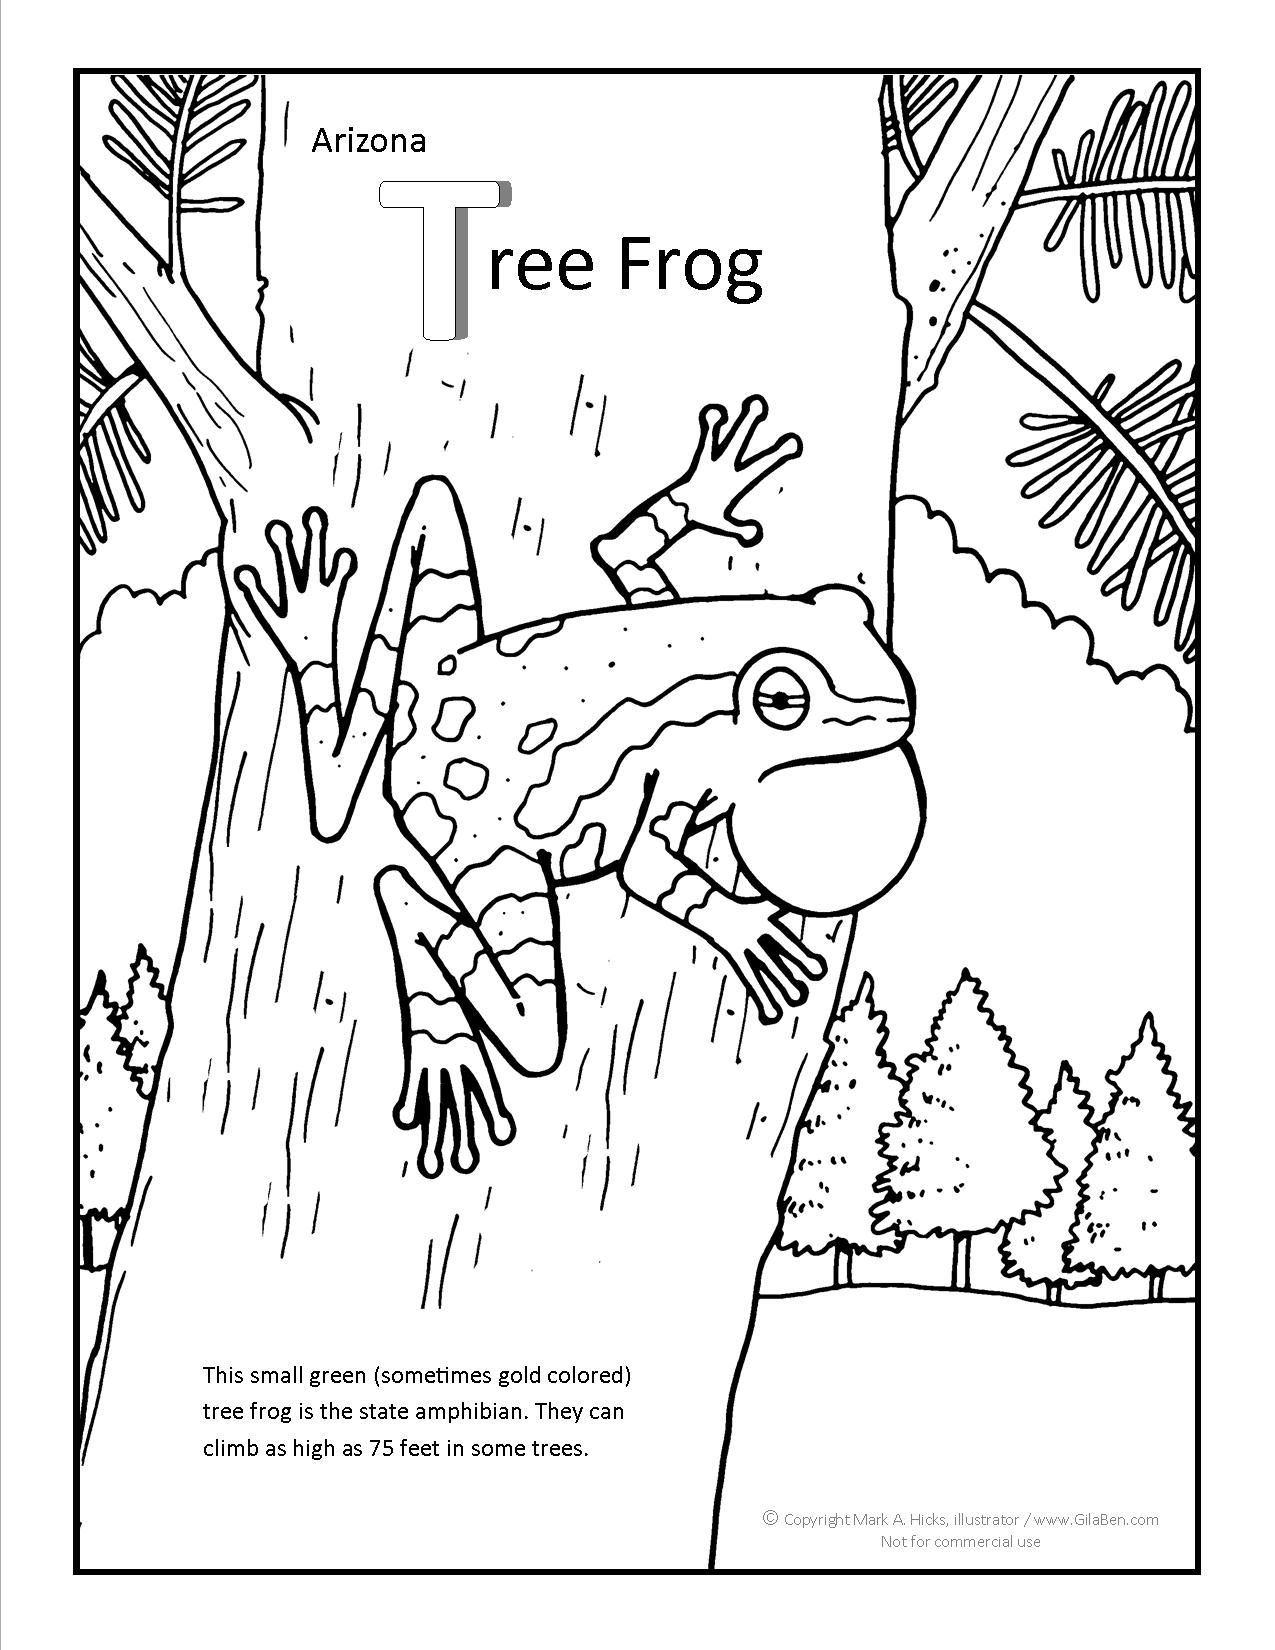 Arizona Tree Frog Coloring Page At Gilaben